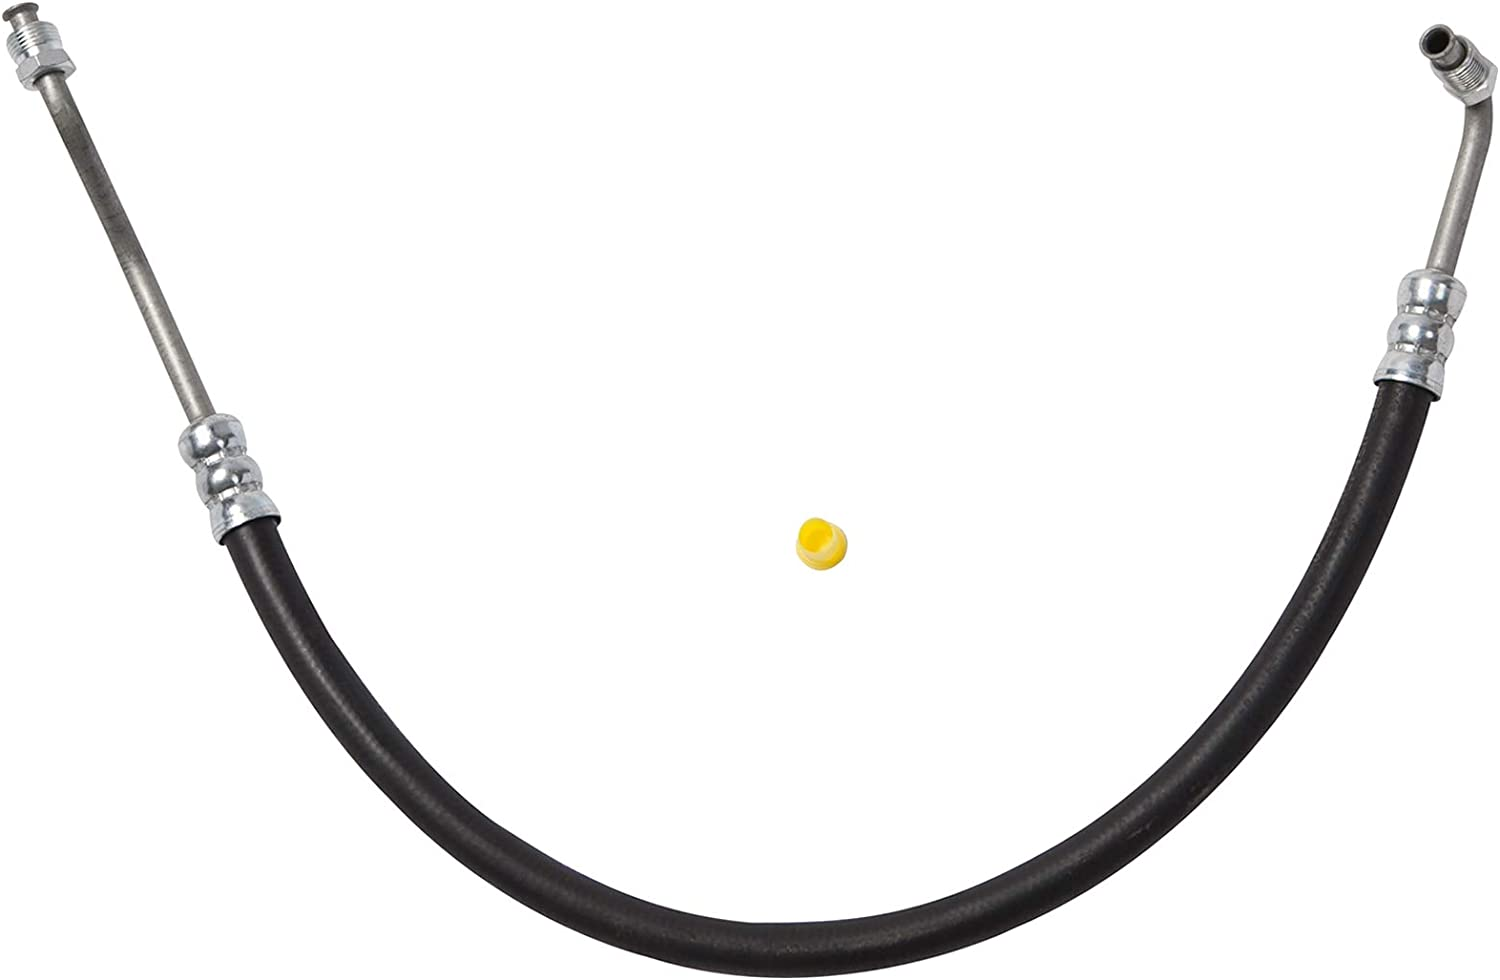 Gates 352450 Power Steering Line Assembly Special price Save money for a limited time Pressure Hose